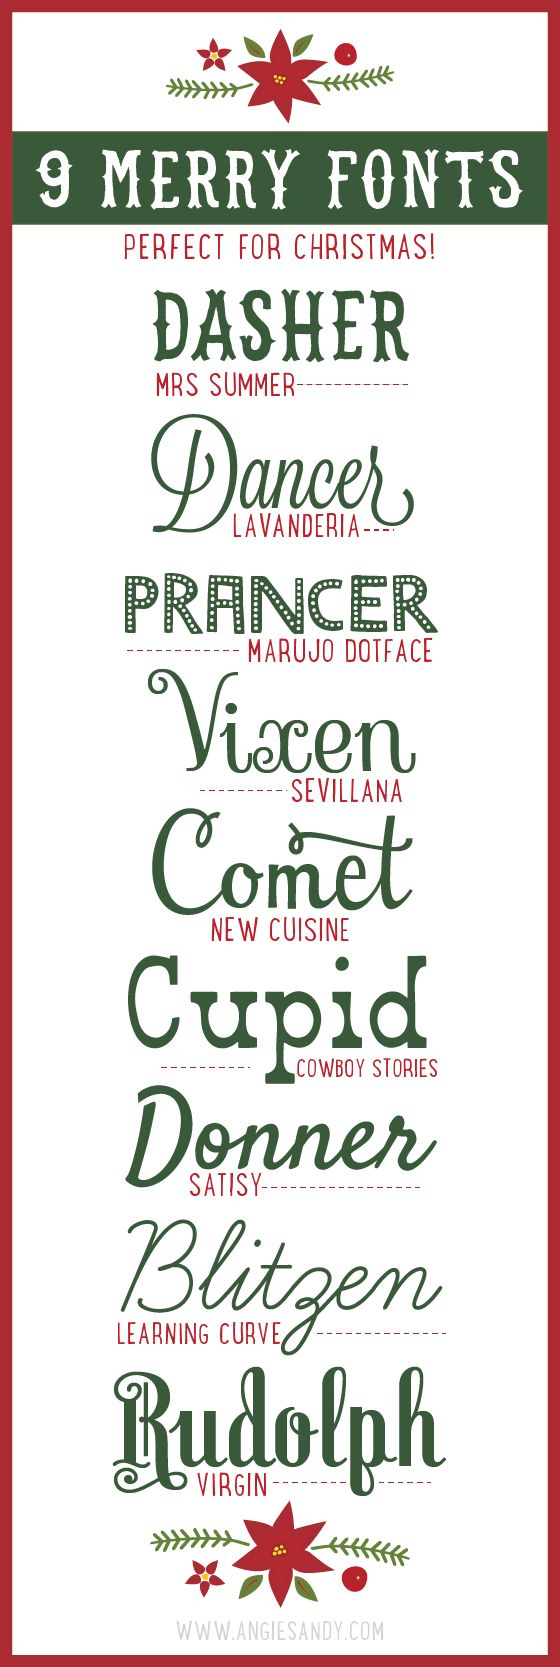 9 Merry Fonts for Christmas #christmas #fonts